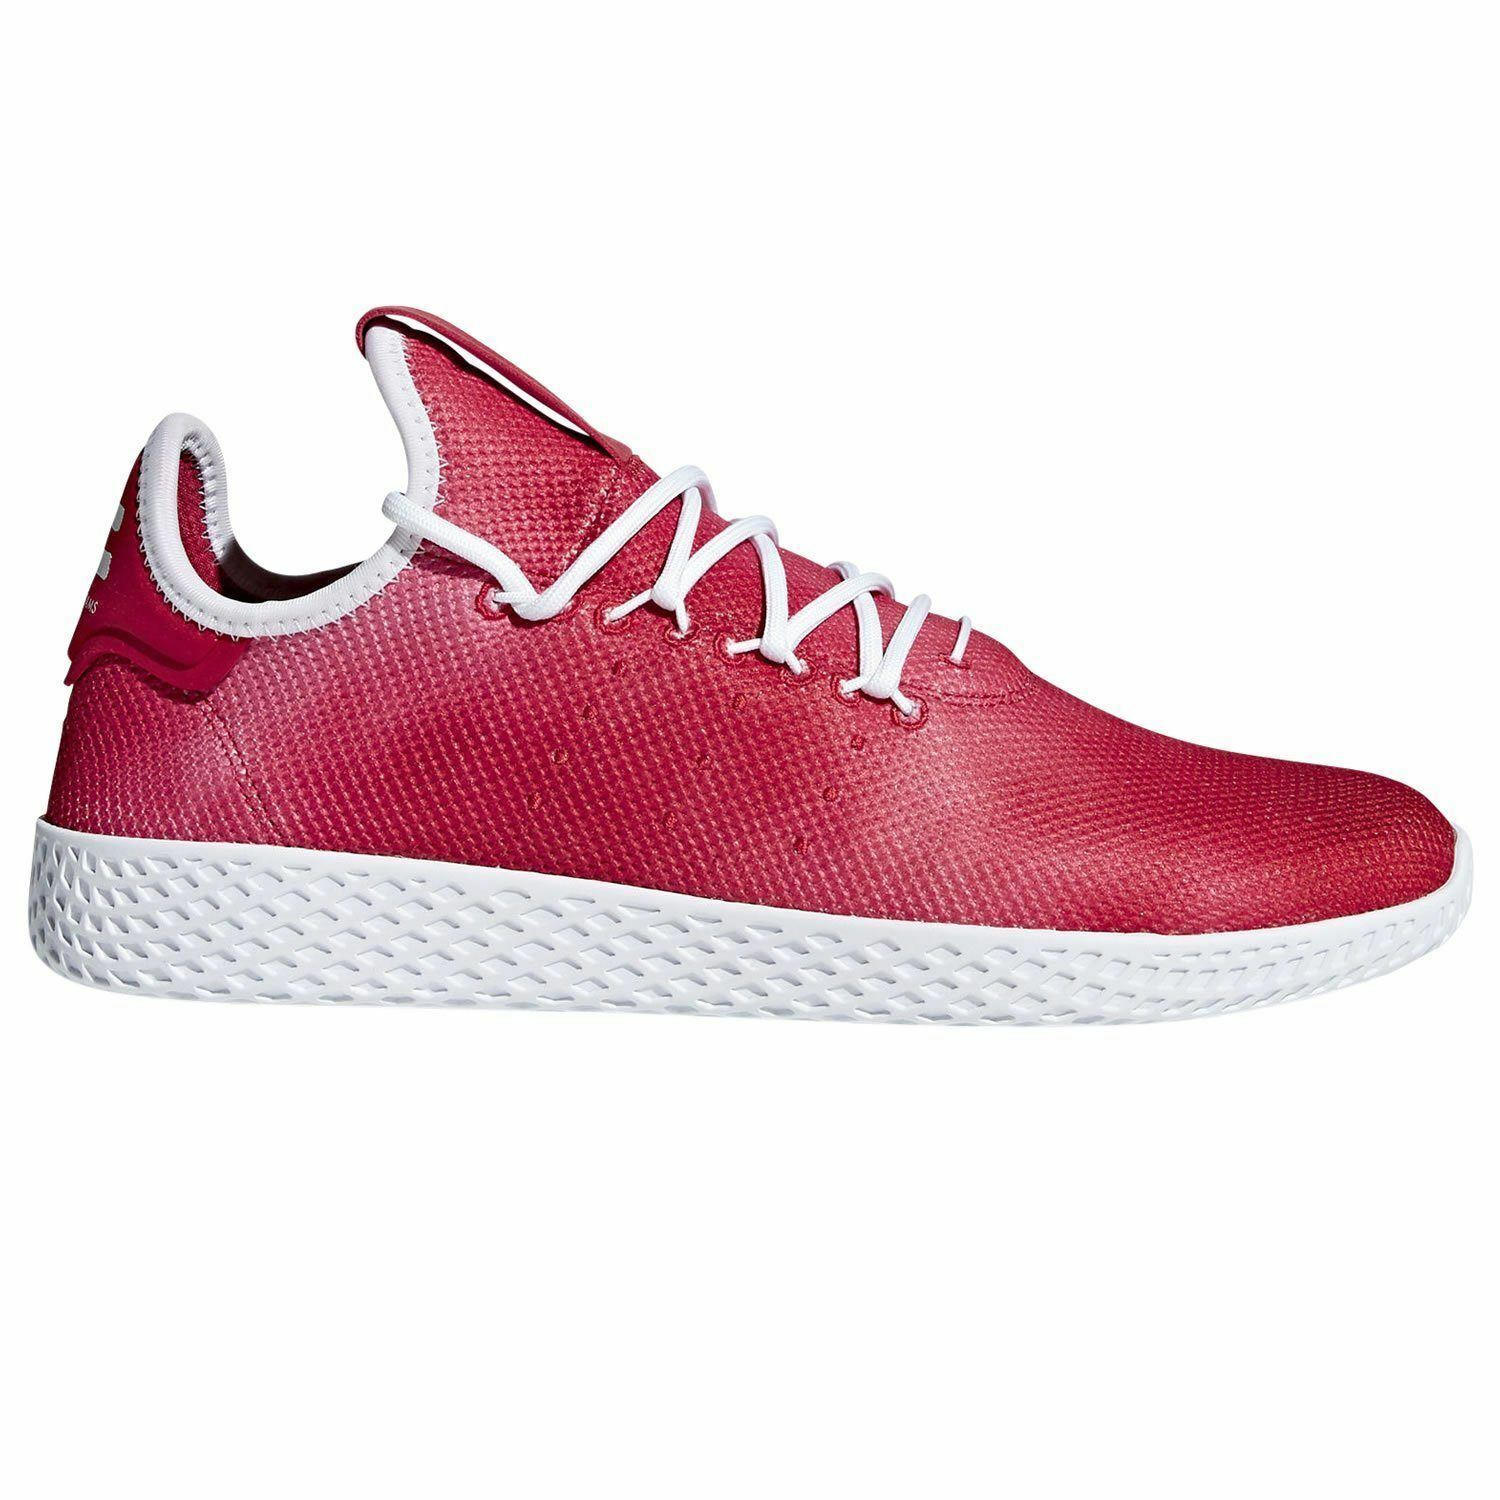 Adidas PHARRELL WILLIAMS HU TENNIS SHOES RED SNEAKERS TRAINERS RETRO NEW KICKS